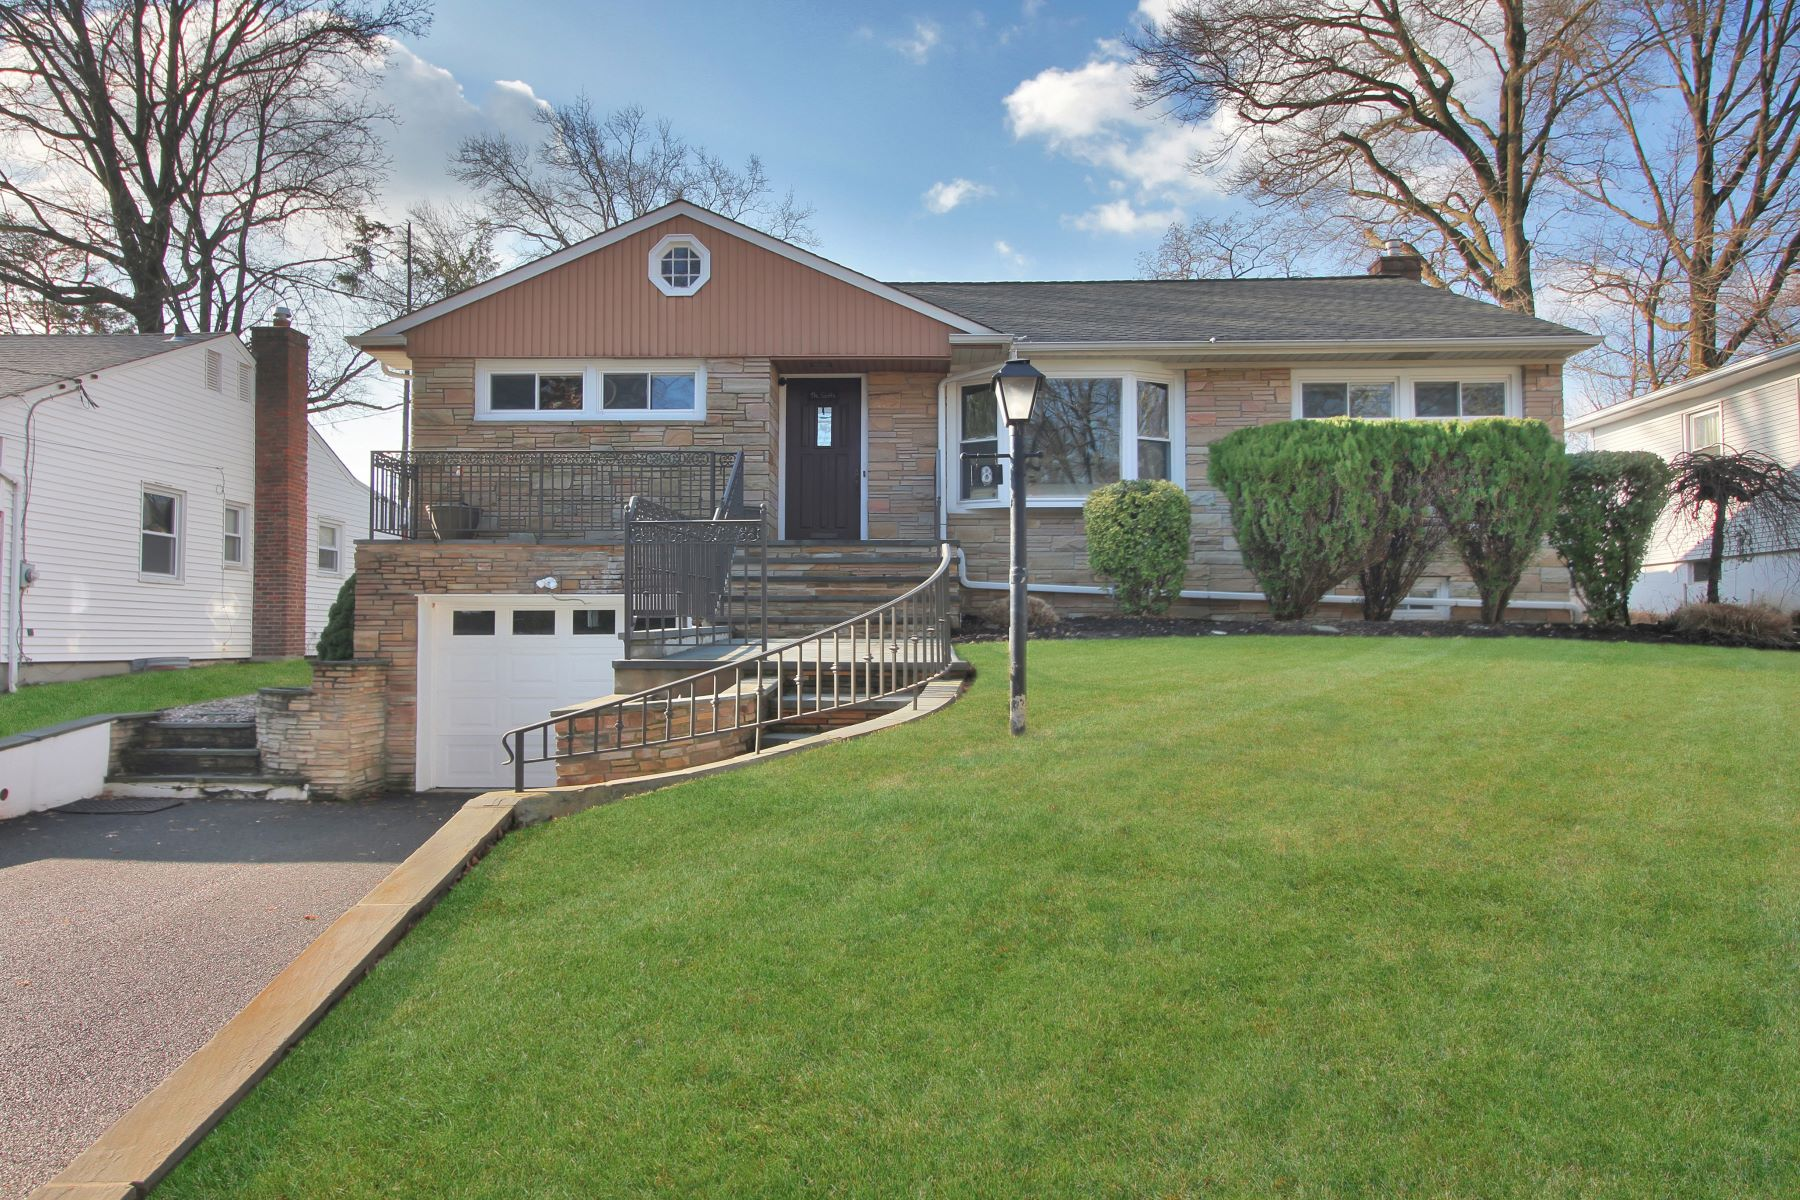 Single Family Homes for Active at Move-In Ready 8 Evergreen Terrace Millburn, New Jersey 07041 United States